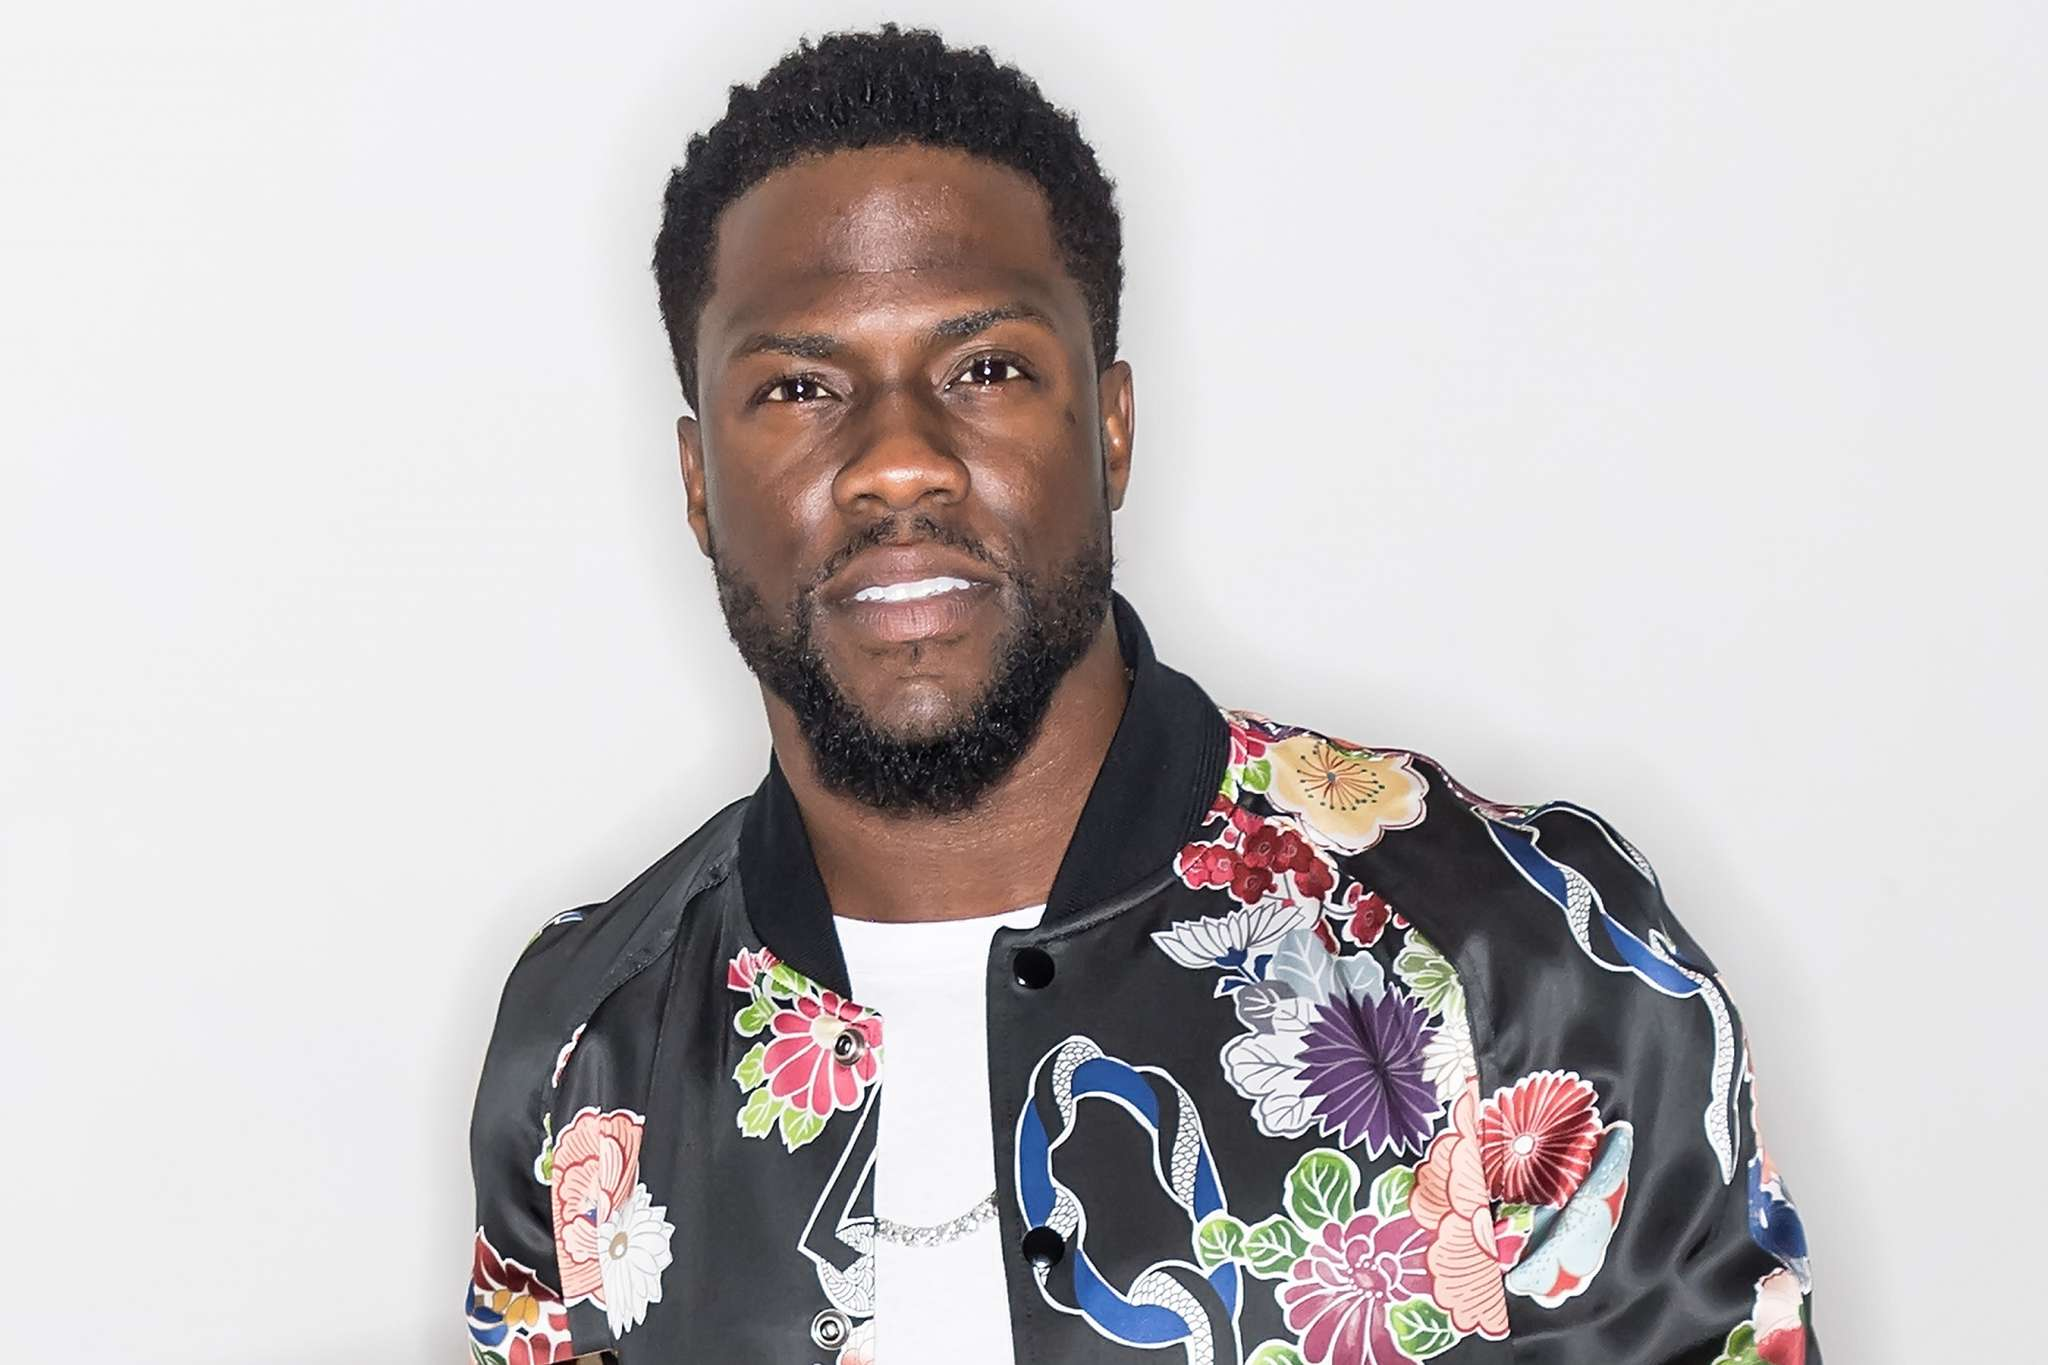 kevin-hart-speaks-on-offensive-tweets-and-jokes-about-cheating